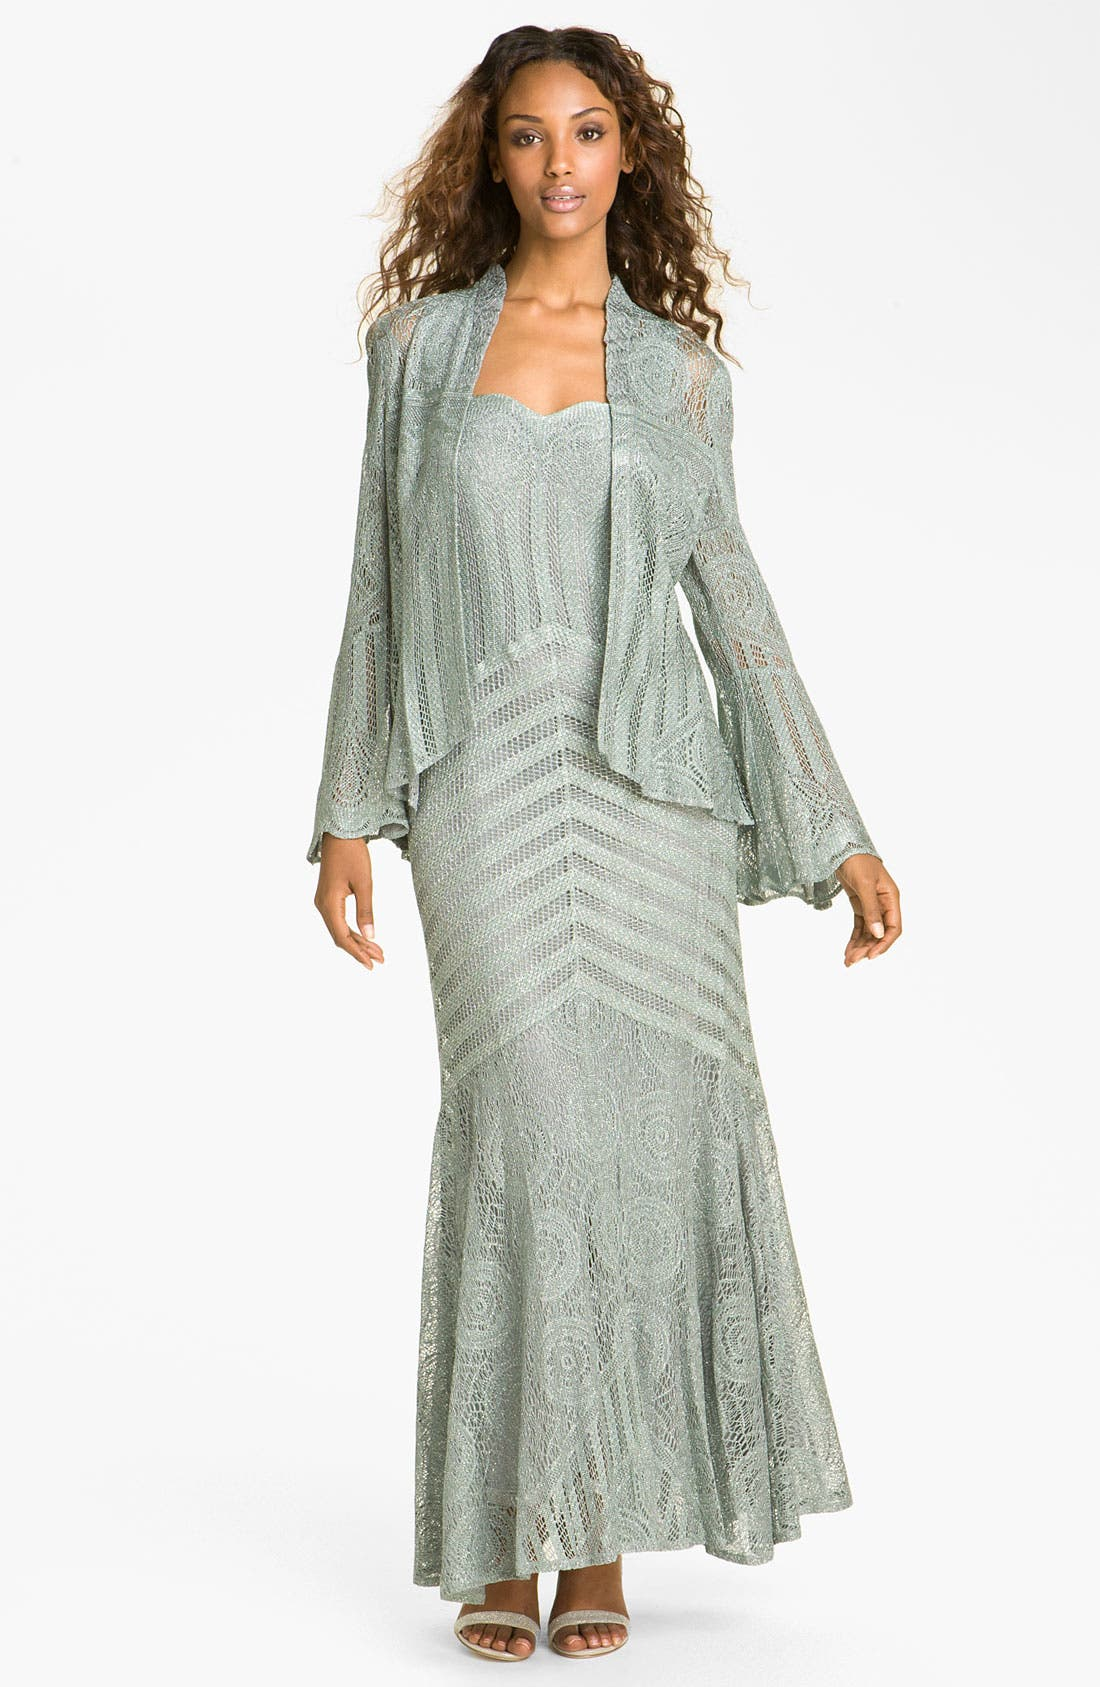 Main Image - Damianou 'Circles' Metallic Knit Gown & Jacket